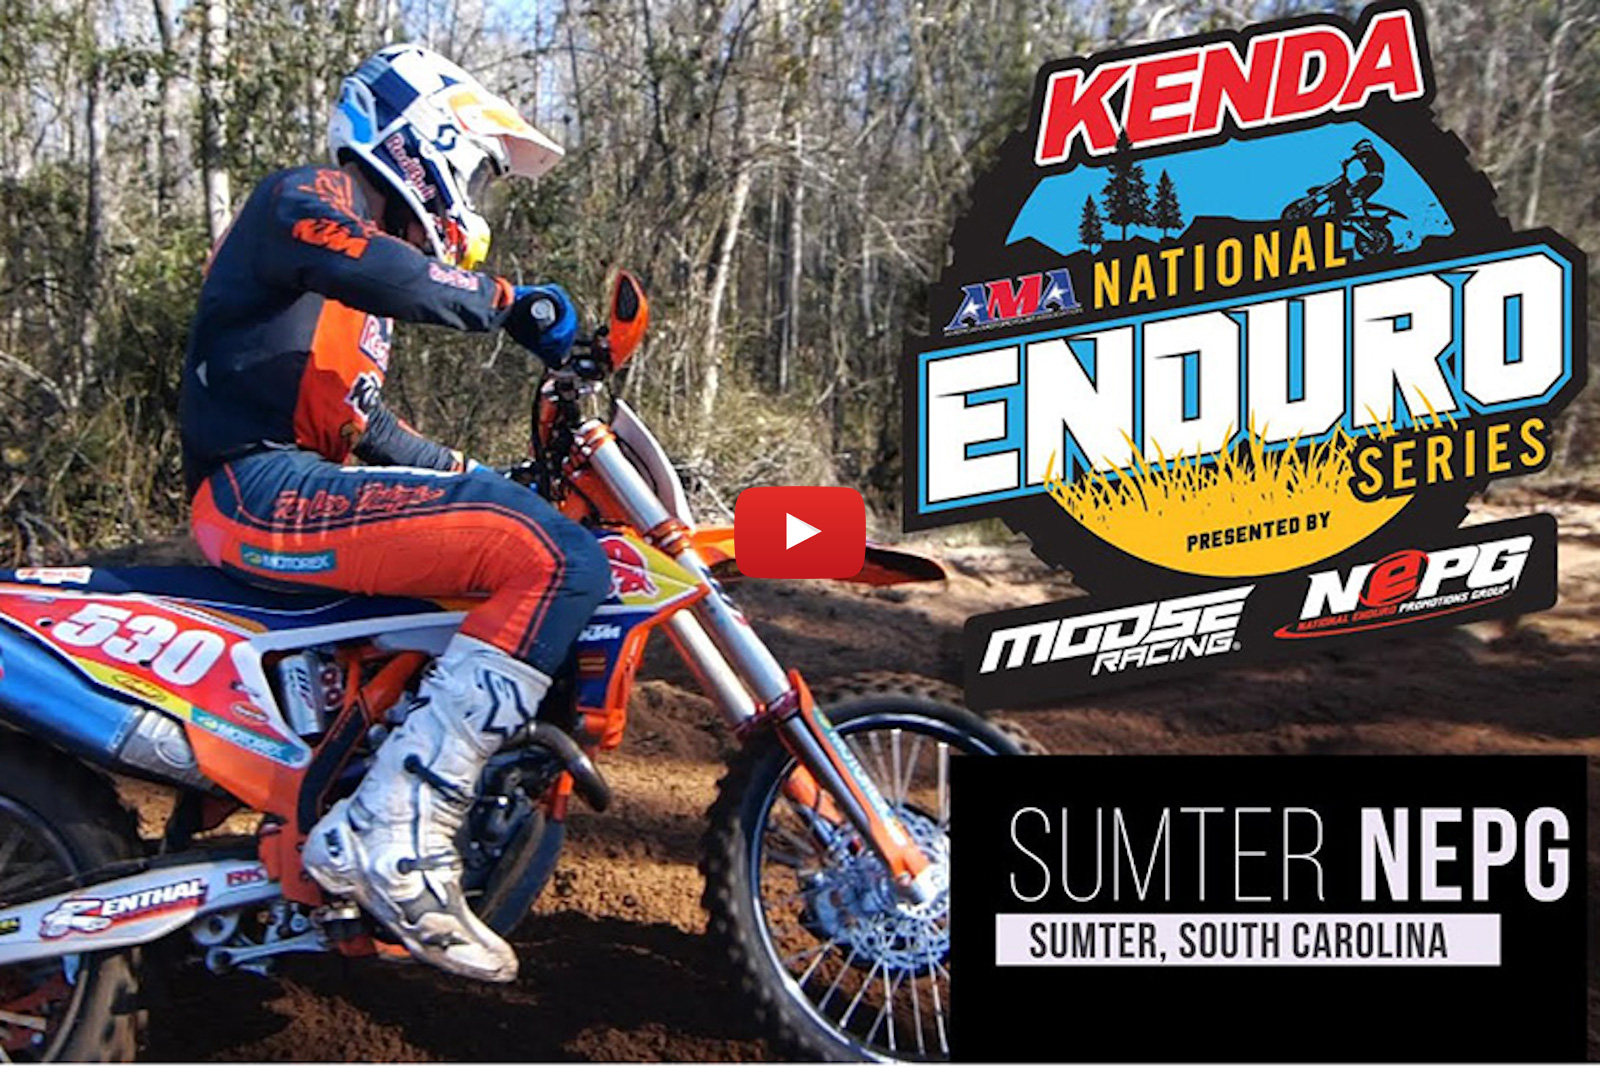 Tree dodging South Carolina style – Sumter National Enduro highlights and Baylor's crash